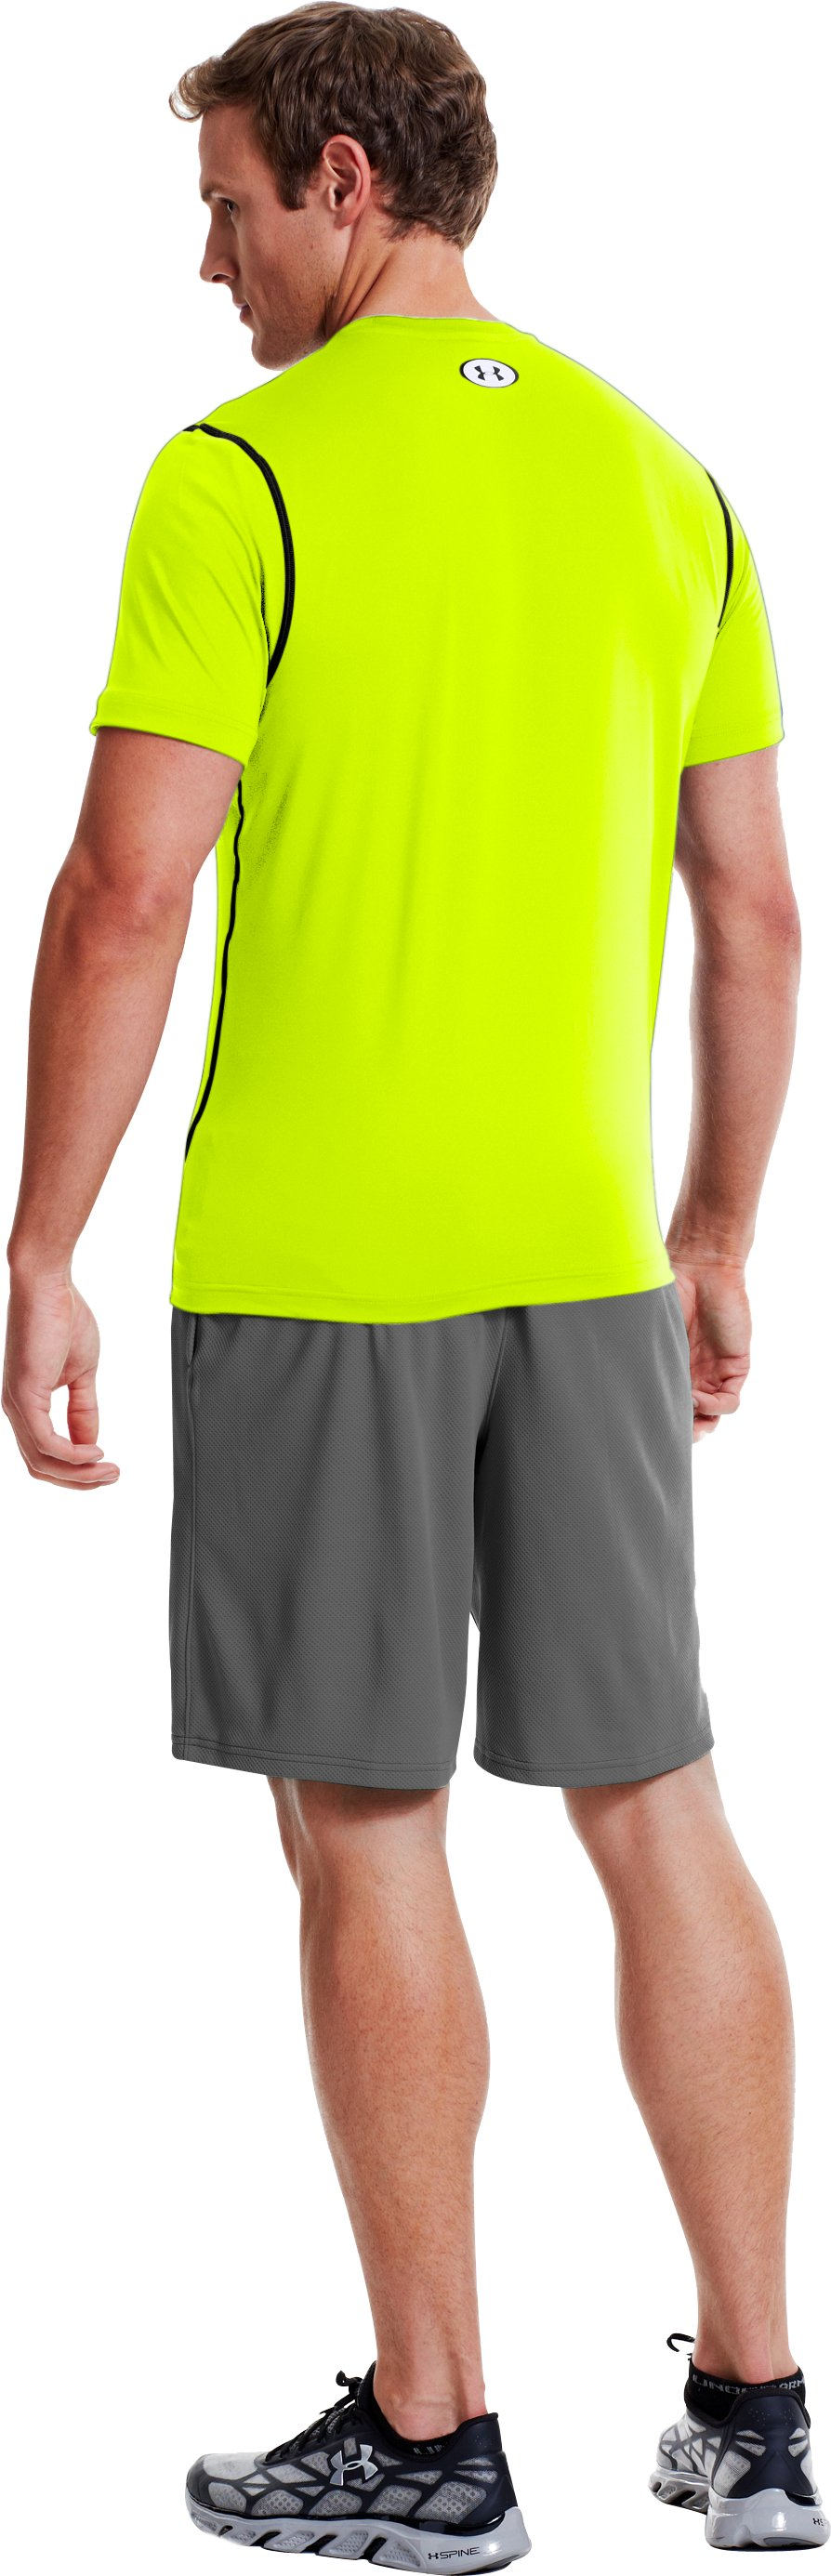 Men's HeatGear® Sonic Fitted Short Sleeve, High-Vis Yellow, Back